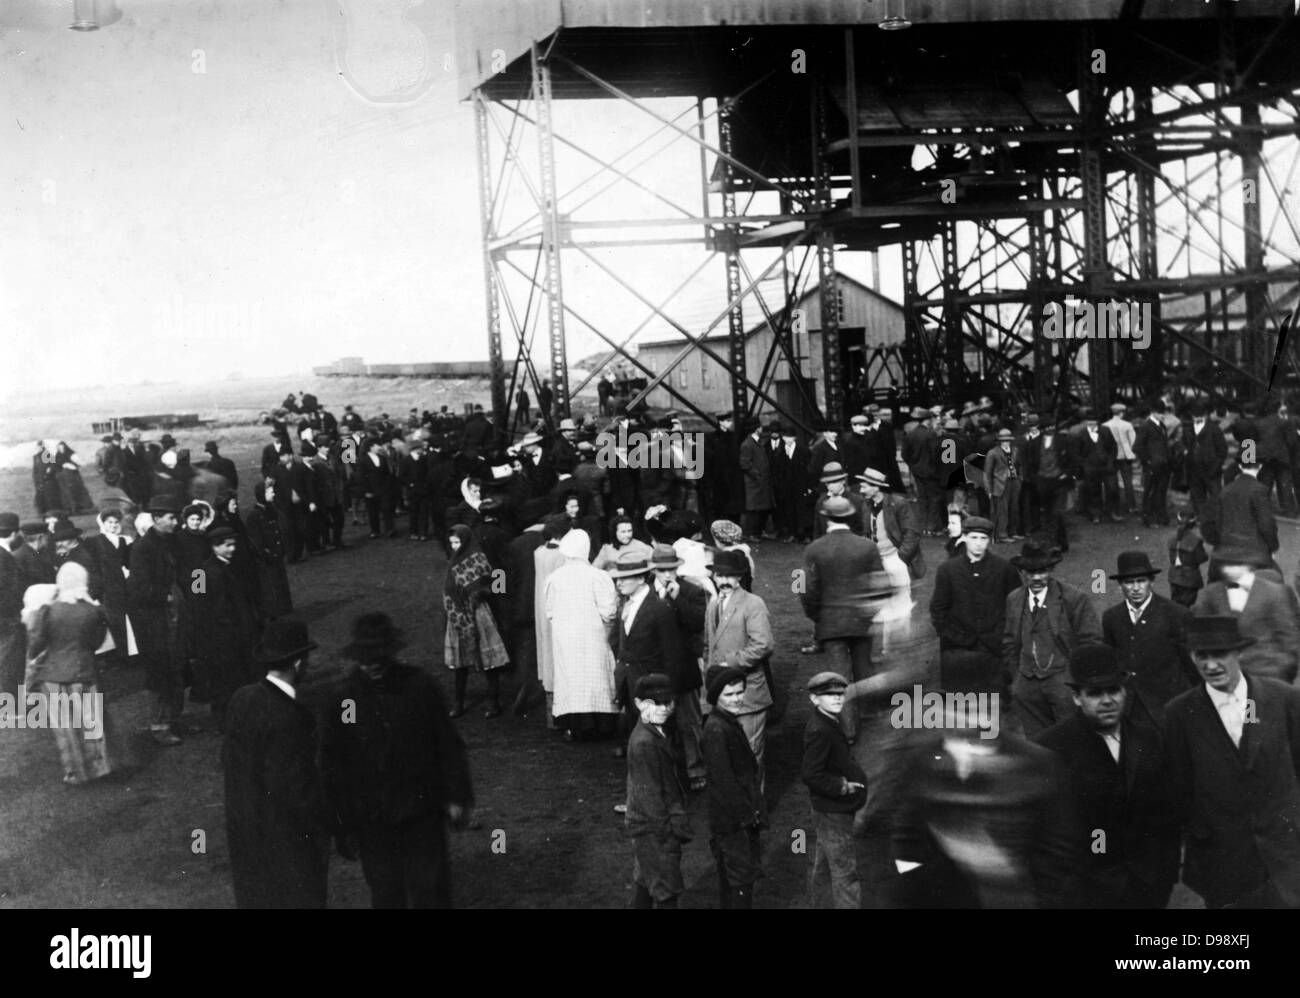 Cherry Mine disaster, crowd at mouth of shaft. The Cherry Mine Disaster is the name for the events surrounding a - Stock Image